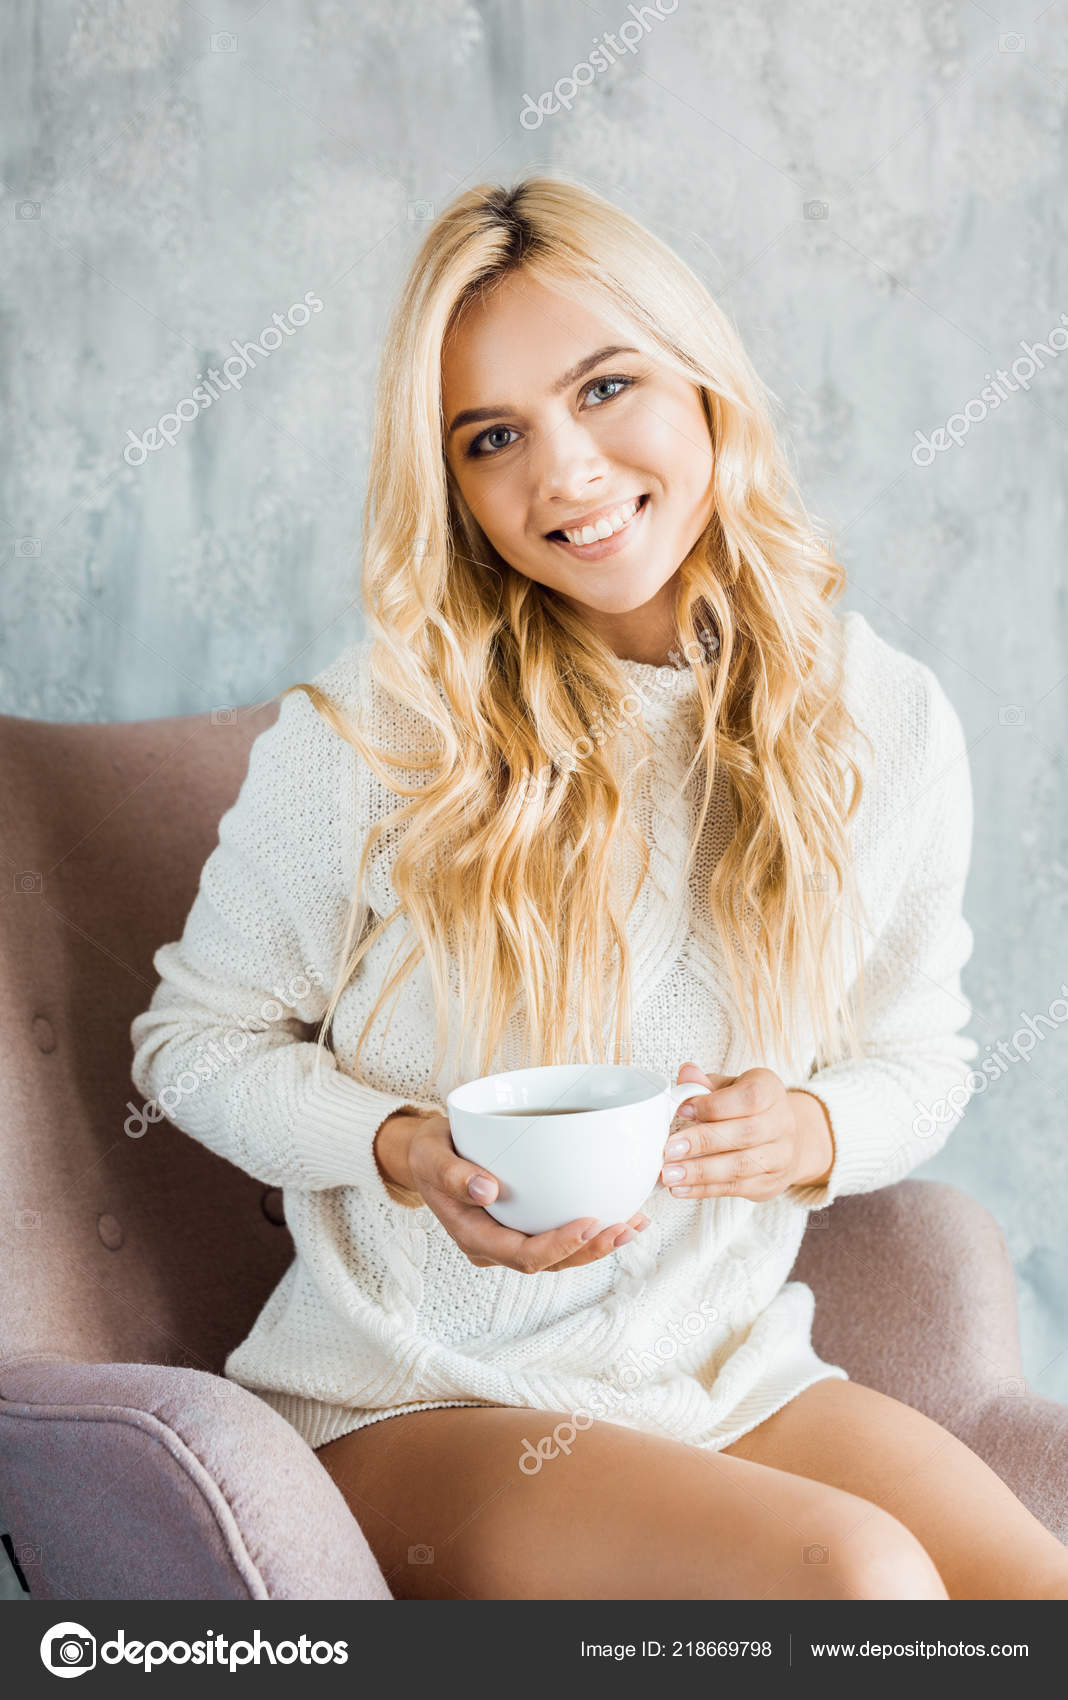 ebd1e16b8e57 Smiling Attractive Woman Sweater Sitting Armchair Holding Cup Coffee  Bedroom — Stock Photo